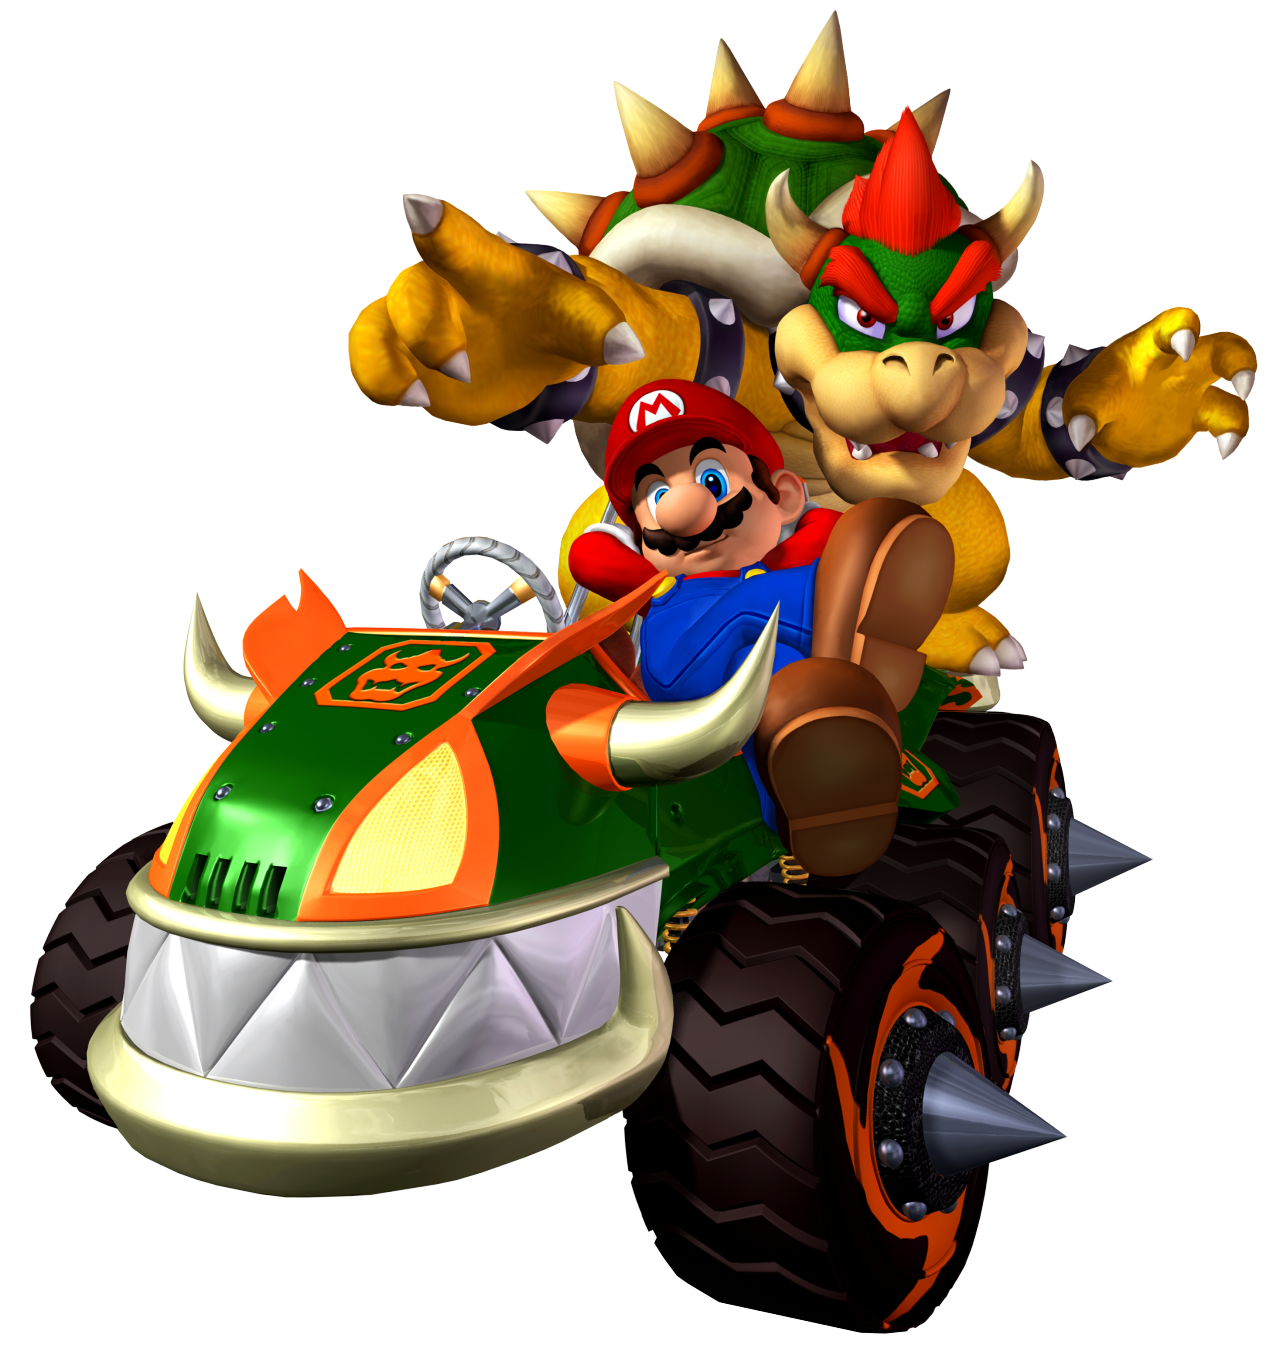 Mario kart double dash png. Push tiny know your